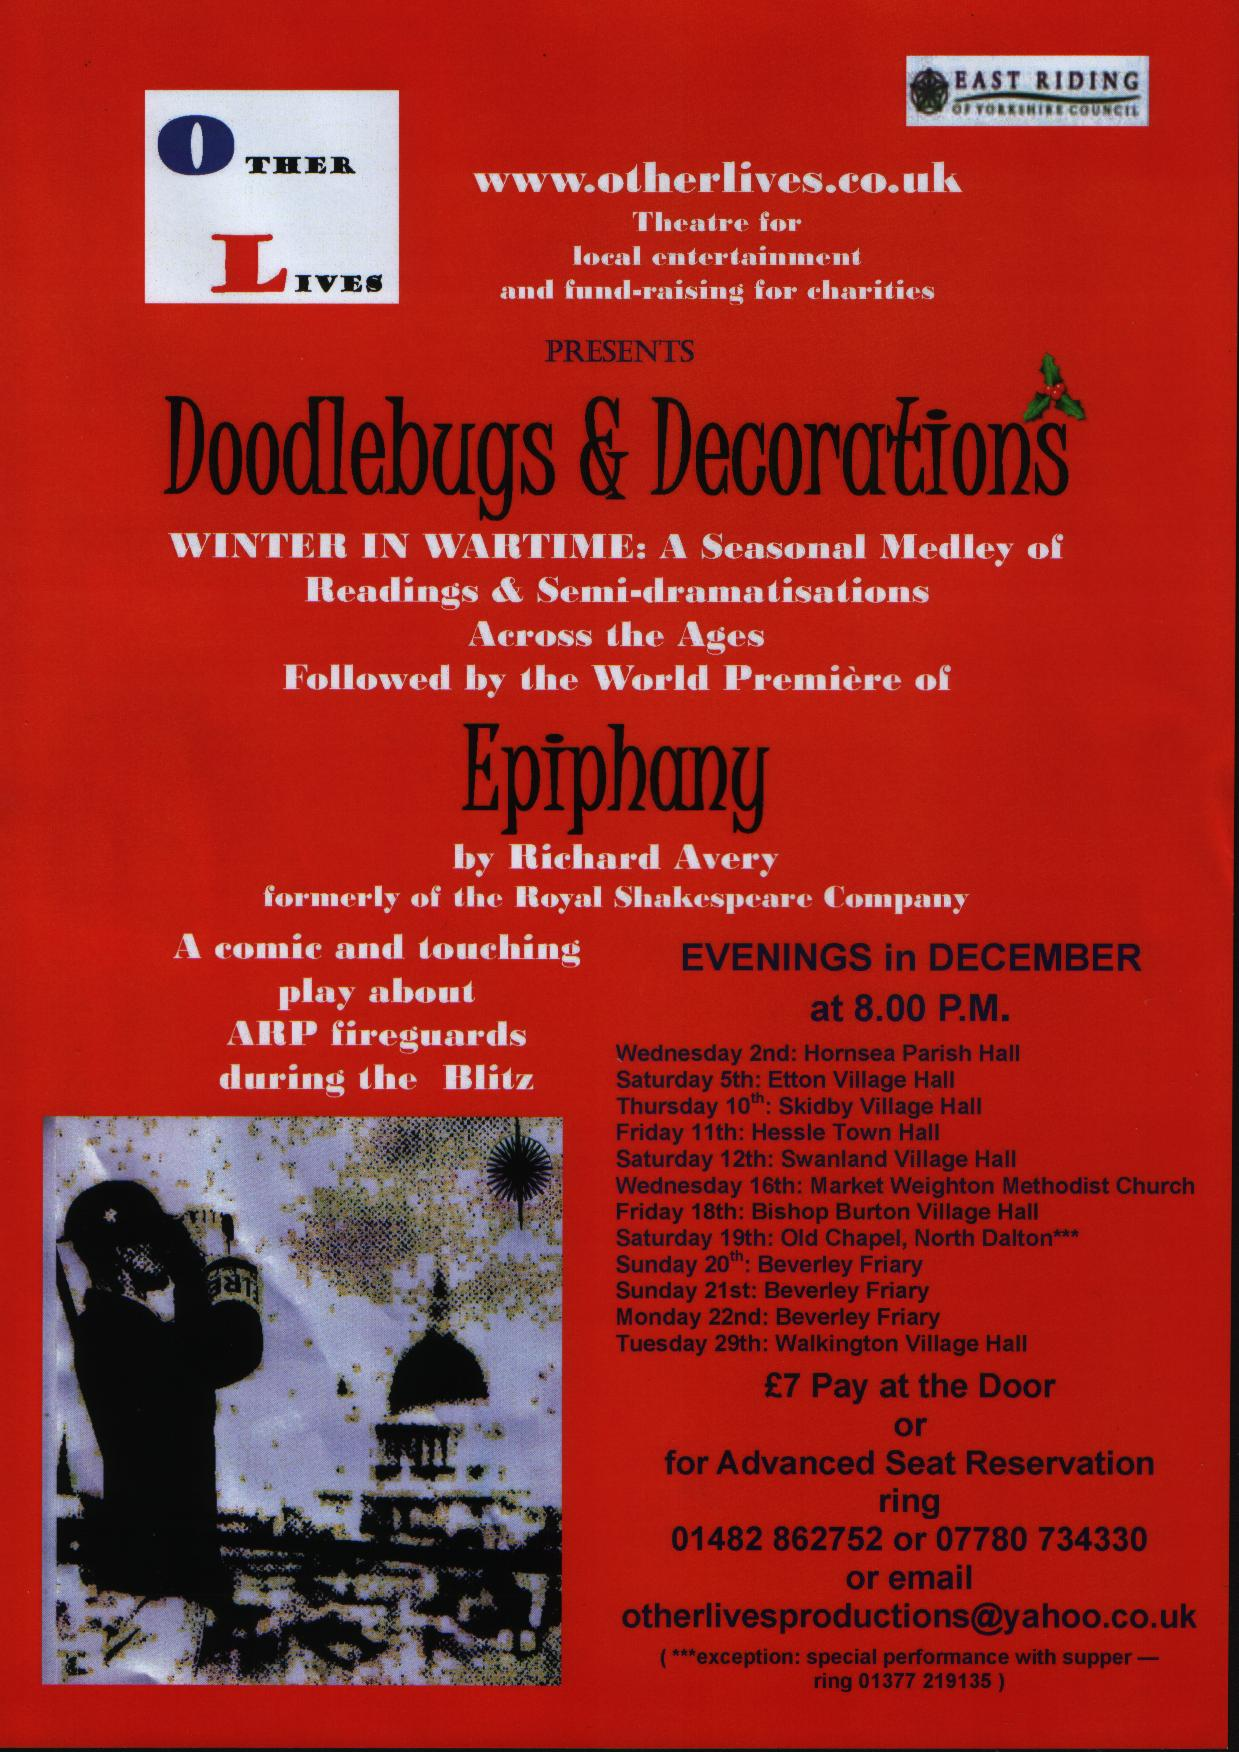 doodlebugs-decorations-poster-flyer